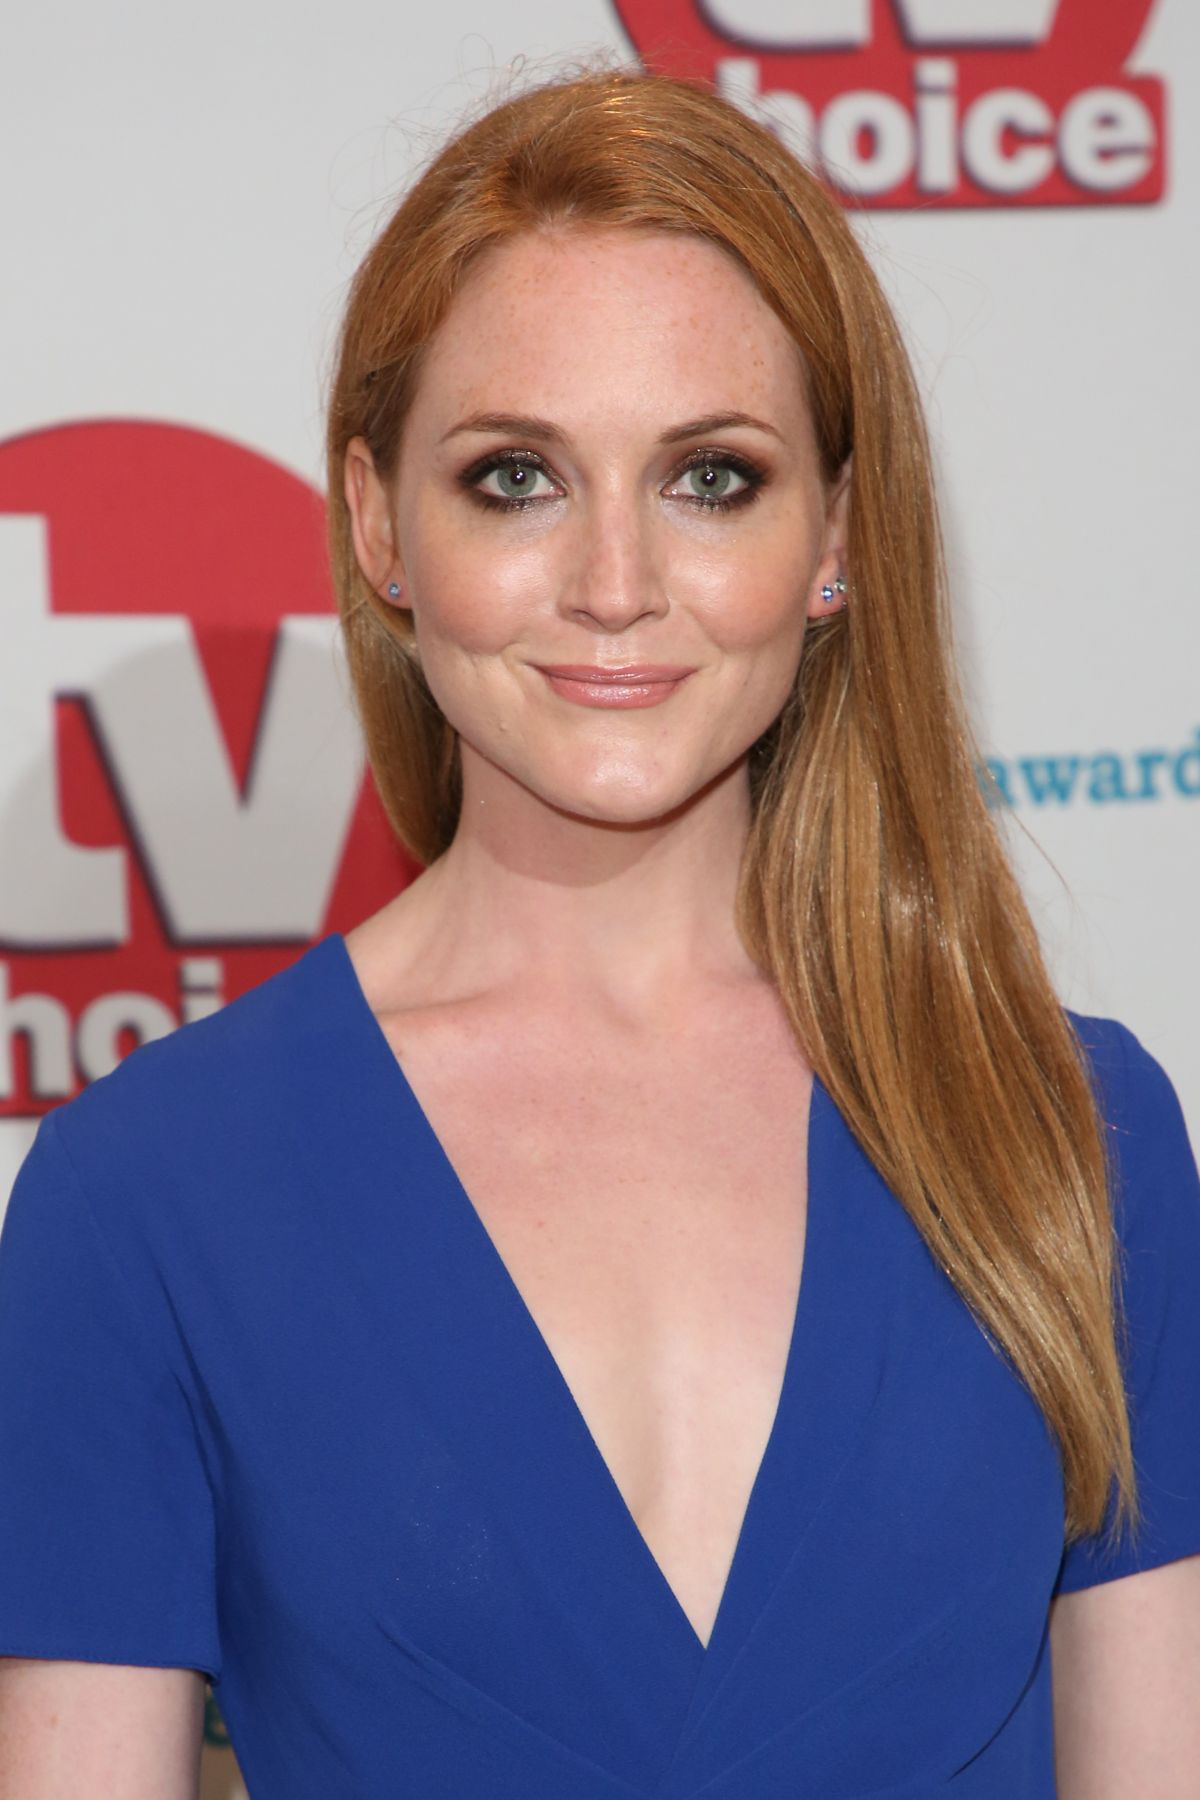 OLIVIA HALLINAN at TV Choice Awards in London 09/04/2017